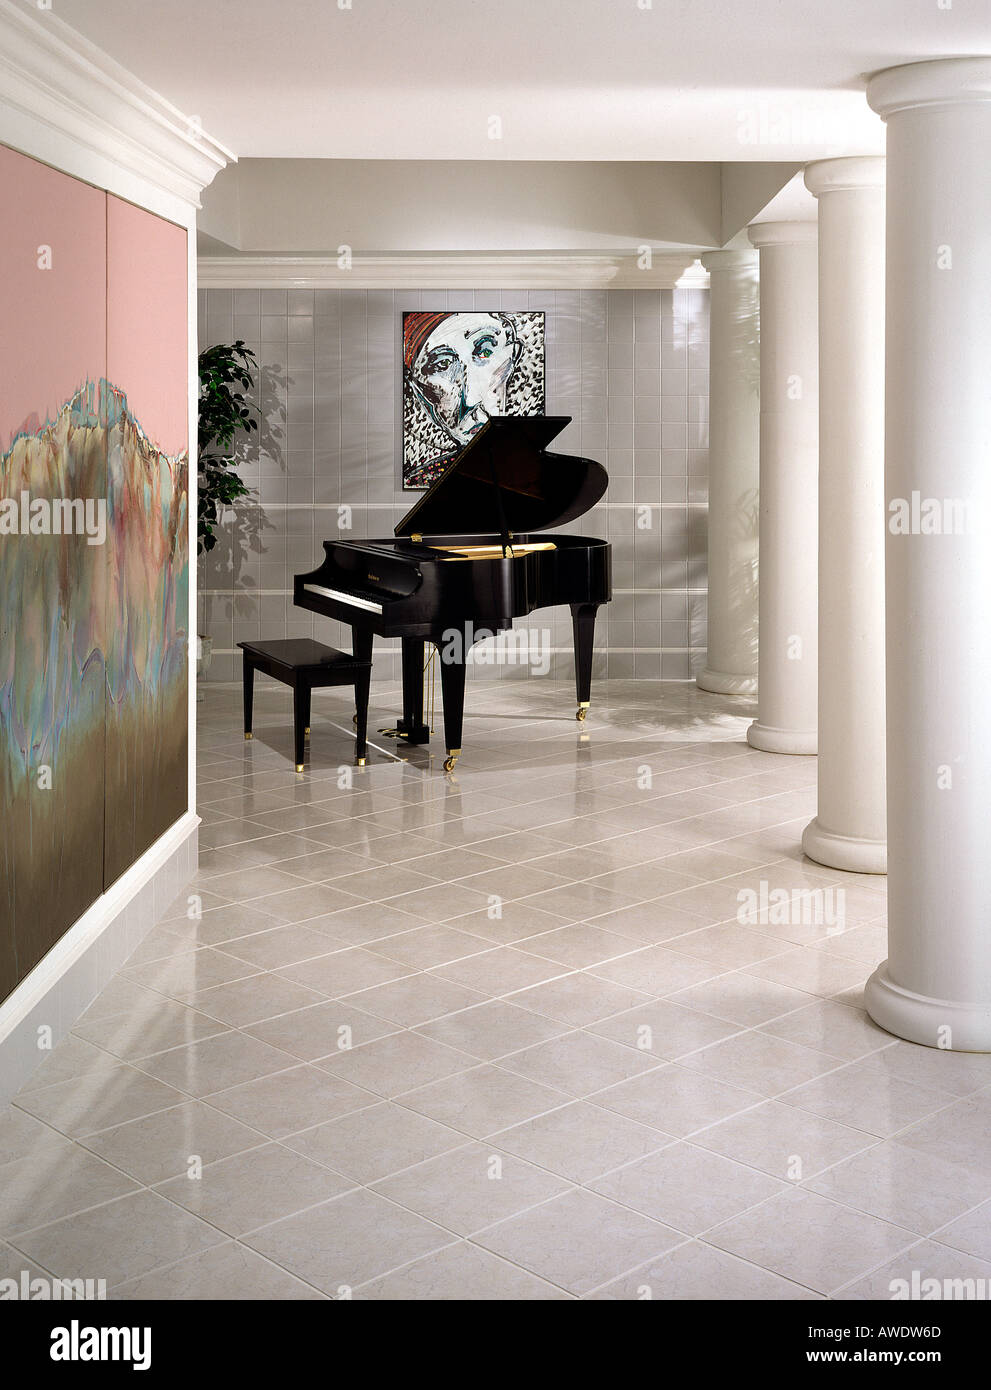 Interior room tile flooring hallway entrance grand piano doric interior room tile flooring hallway entrance grand piano doric columns metro style styling ceramic tile floor dailygadgetfo Images